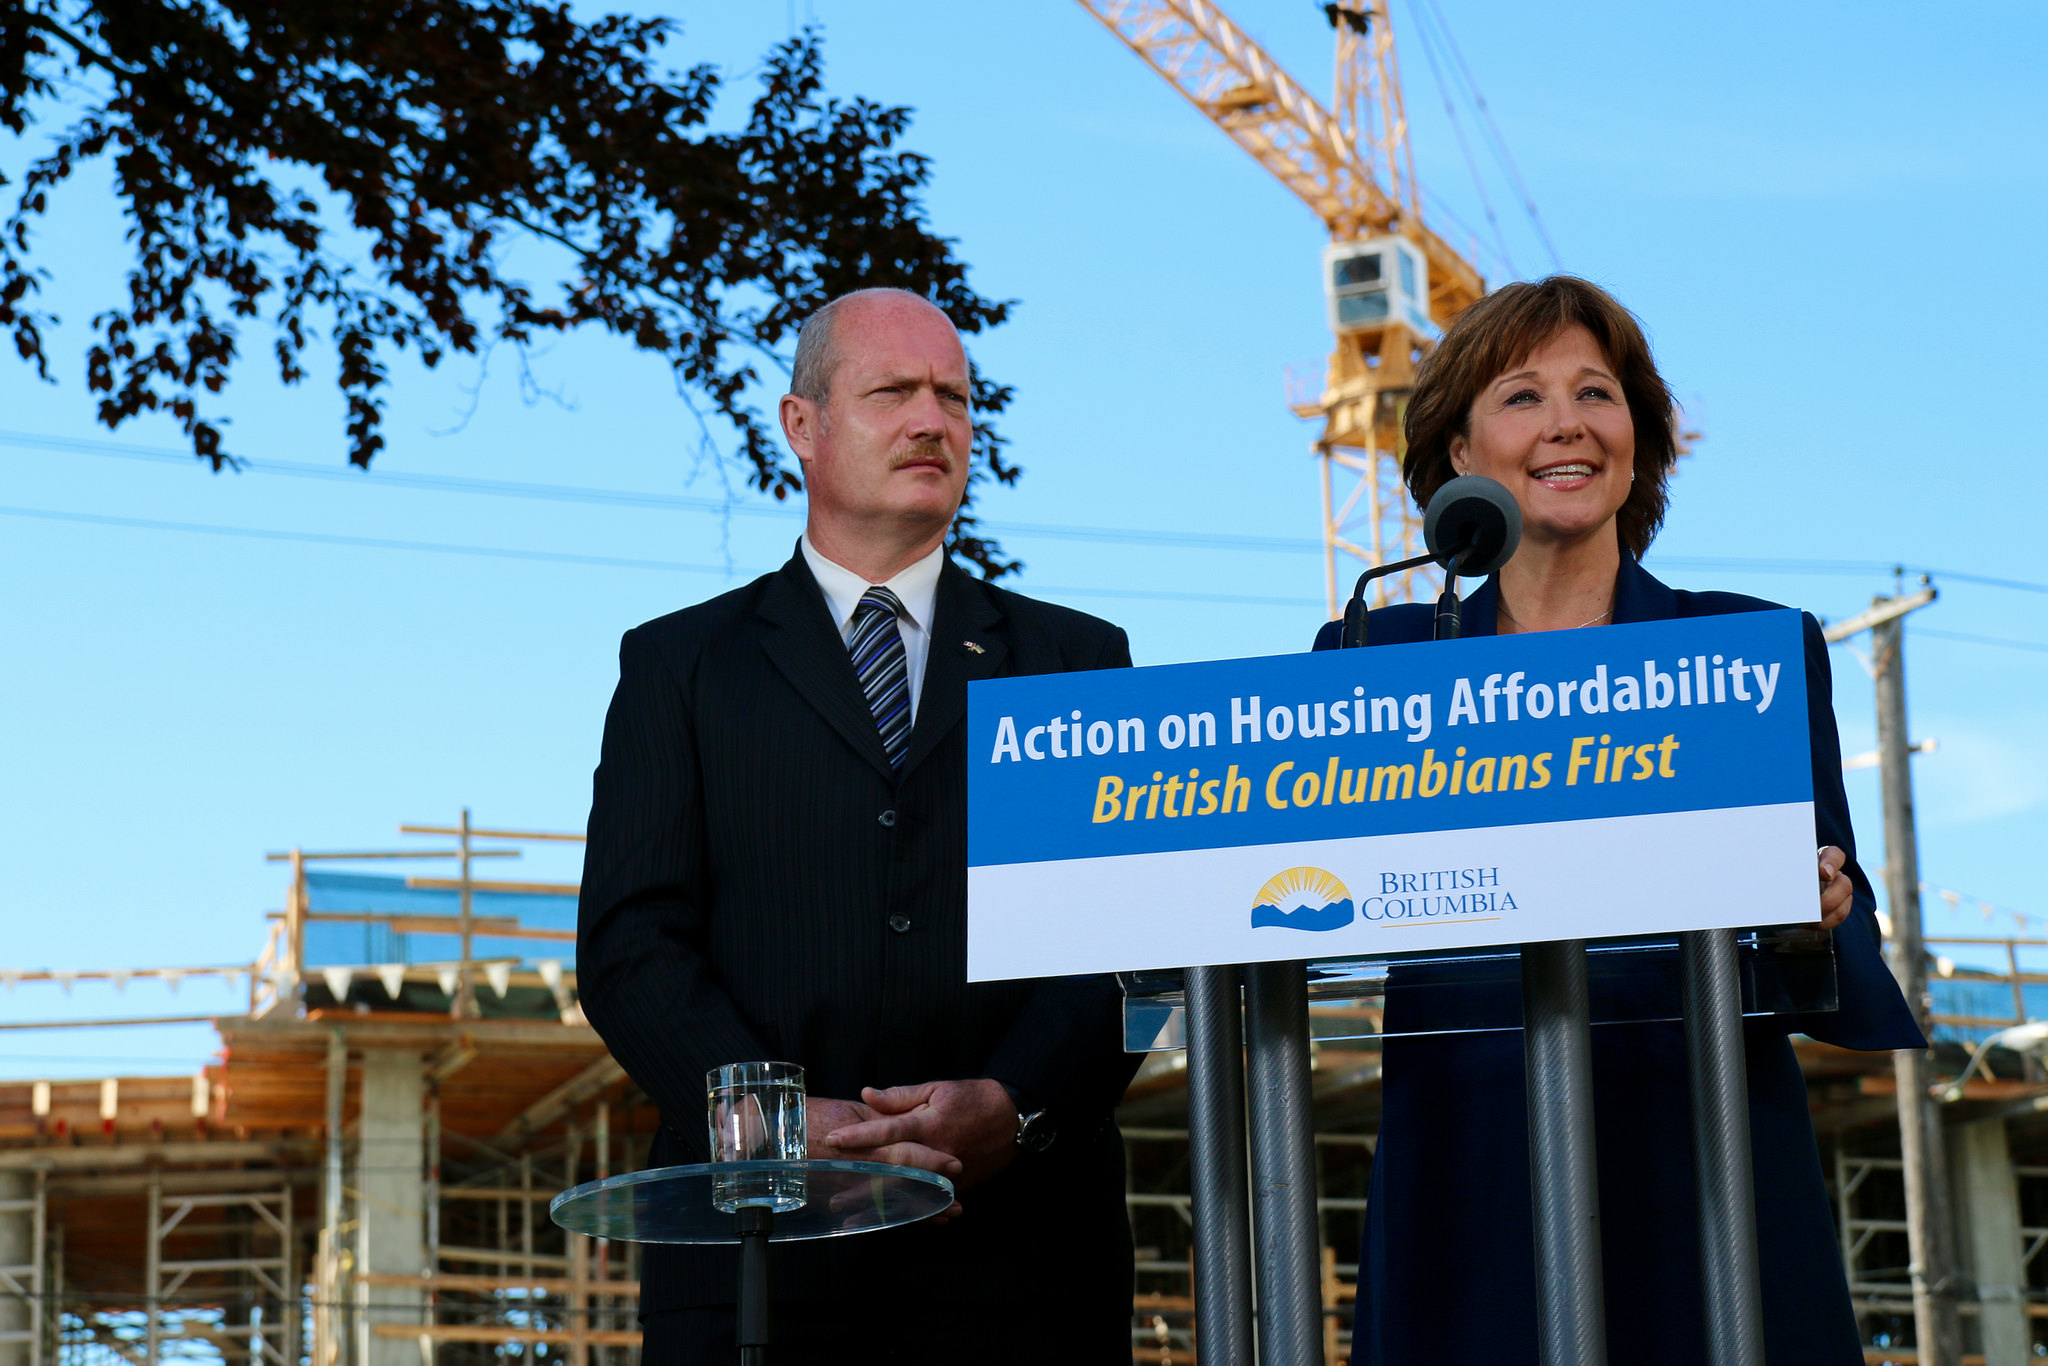 Christy Clark housing affordability announcement